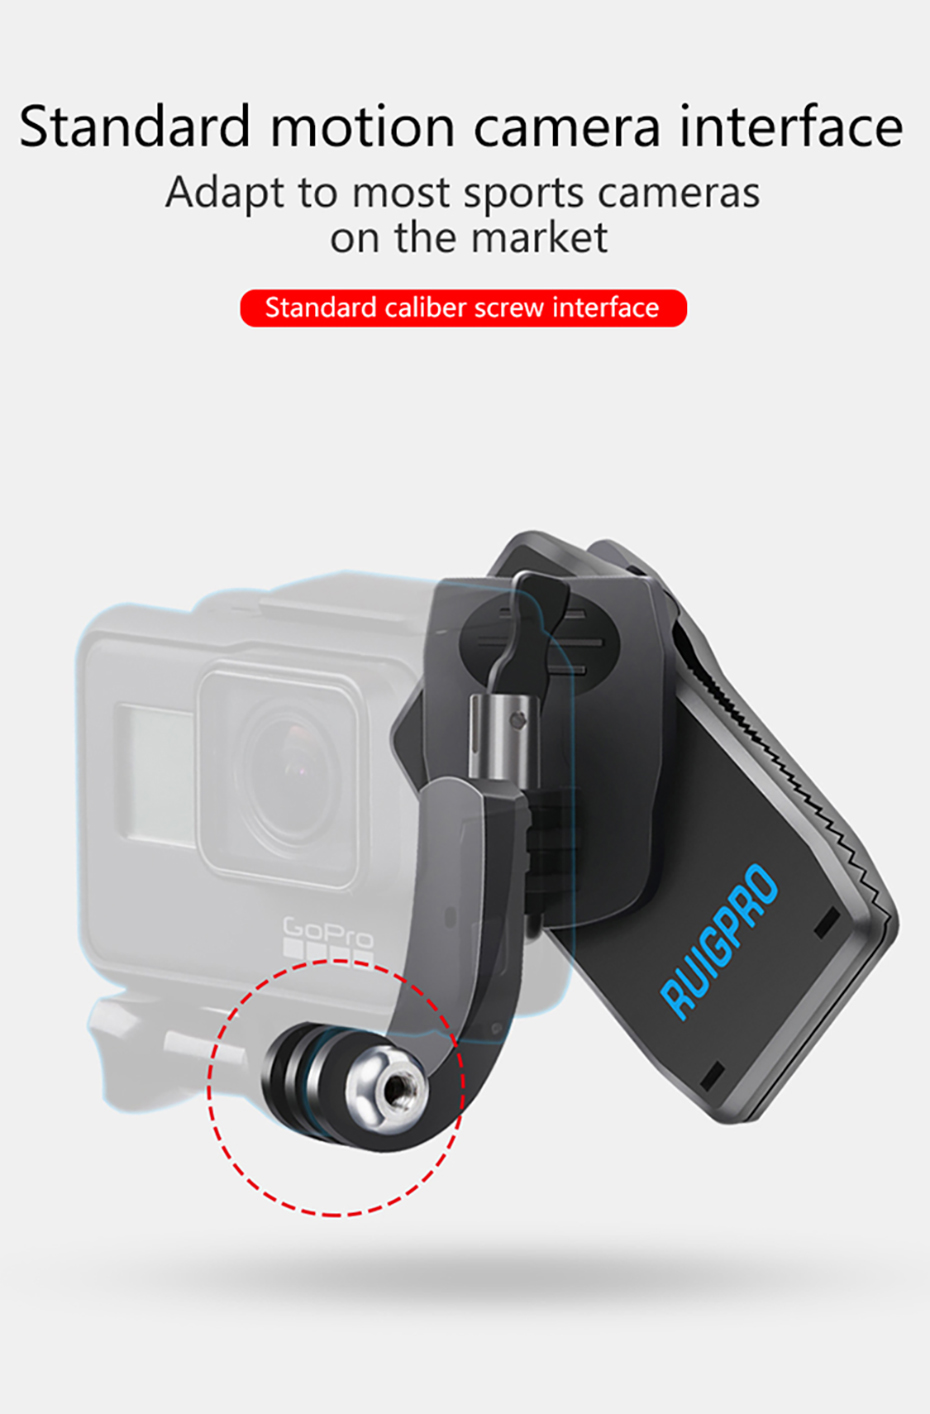 RUIGPRO 360 Degree Adjustable Backpack Clip Clamp Mount Bracket for DJI Osmo Action/GoPro 7/6/5 Xiaomi Yi /Sjcam Sports Camera Accessories - Photo: 7